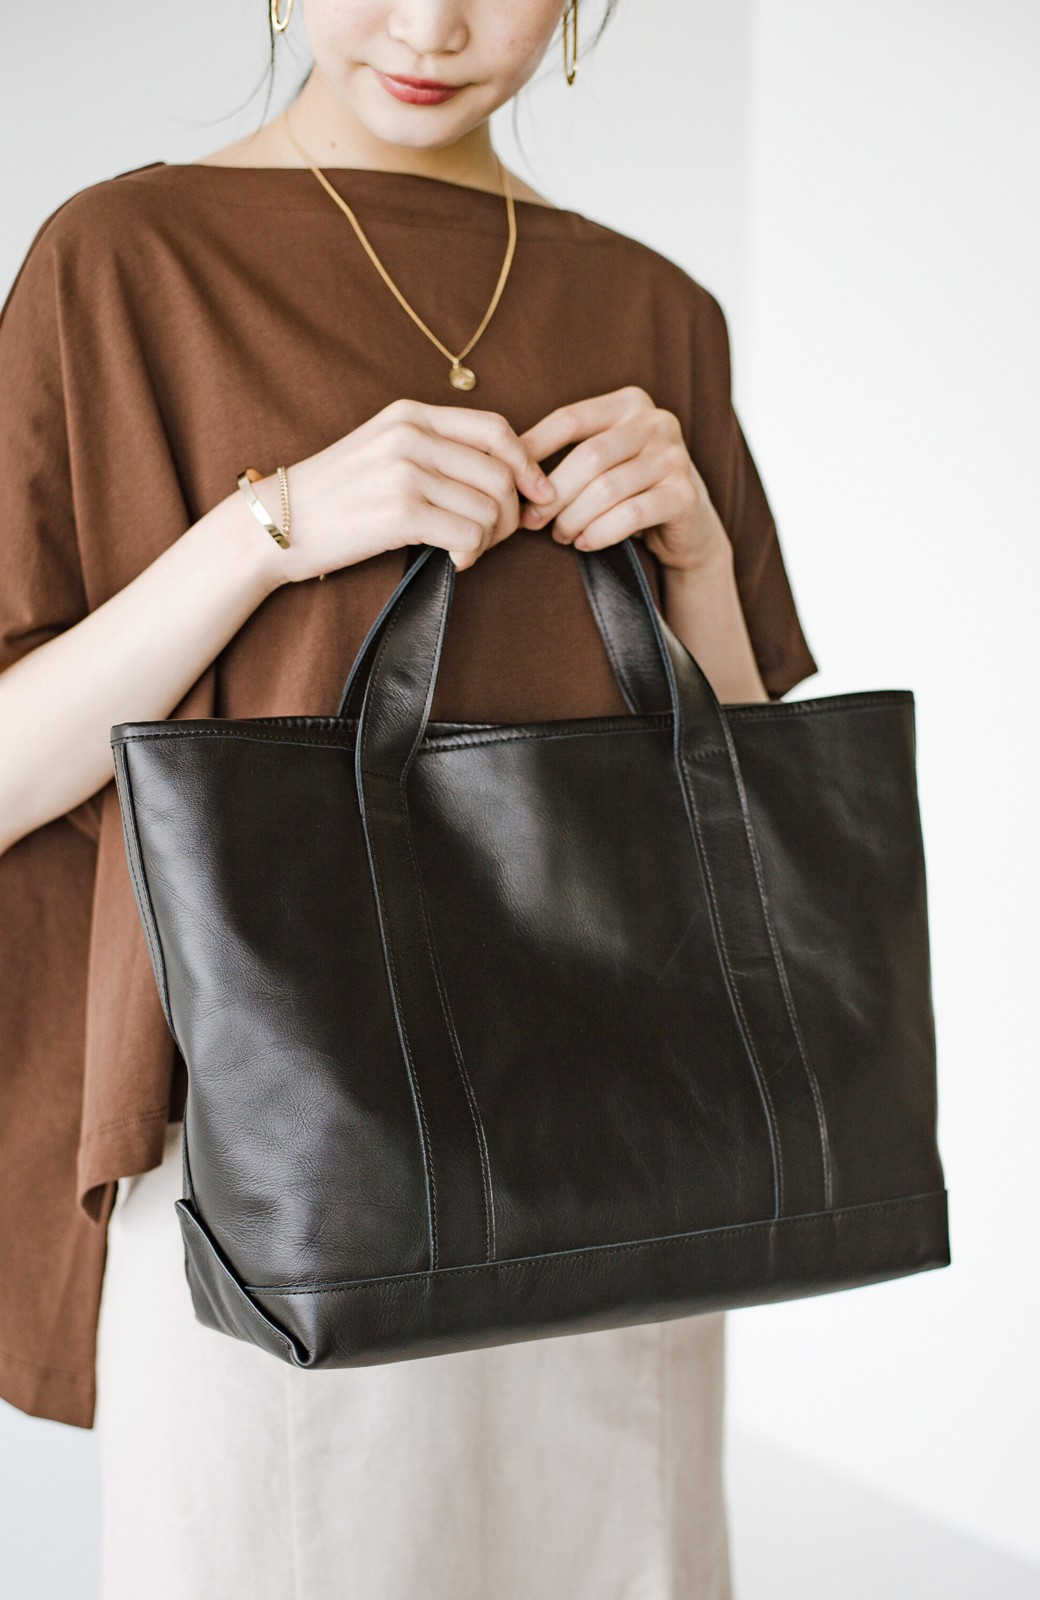 haco! made in JAPAN の本革トートバッグ by que made me <ブラック>の商品写真1